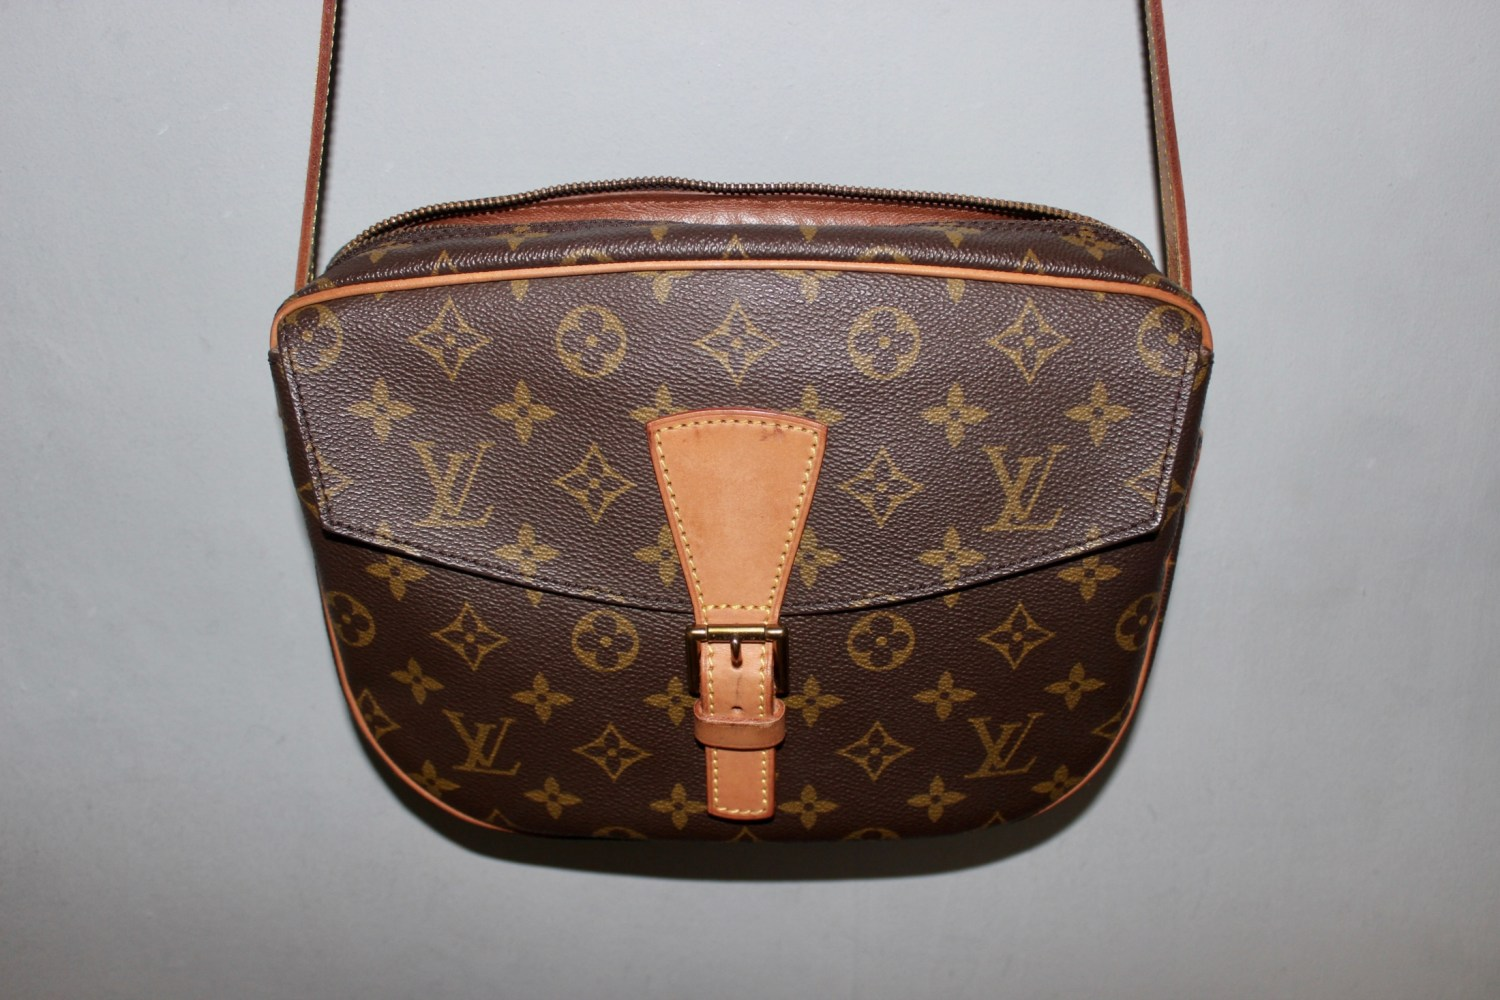 louis vuitton siopaella